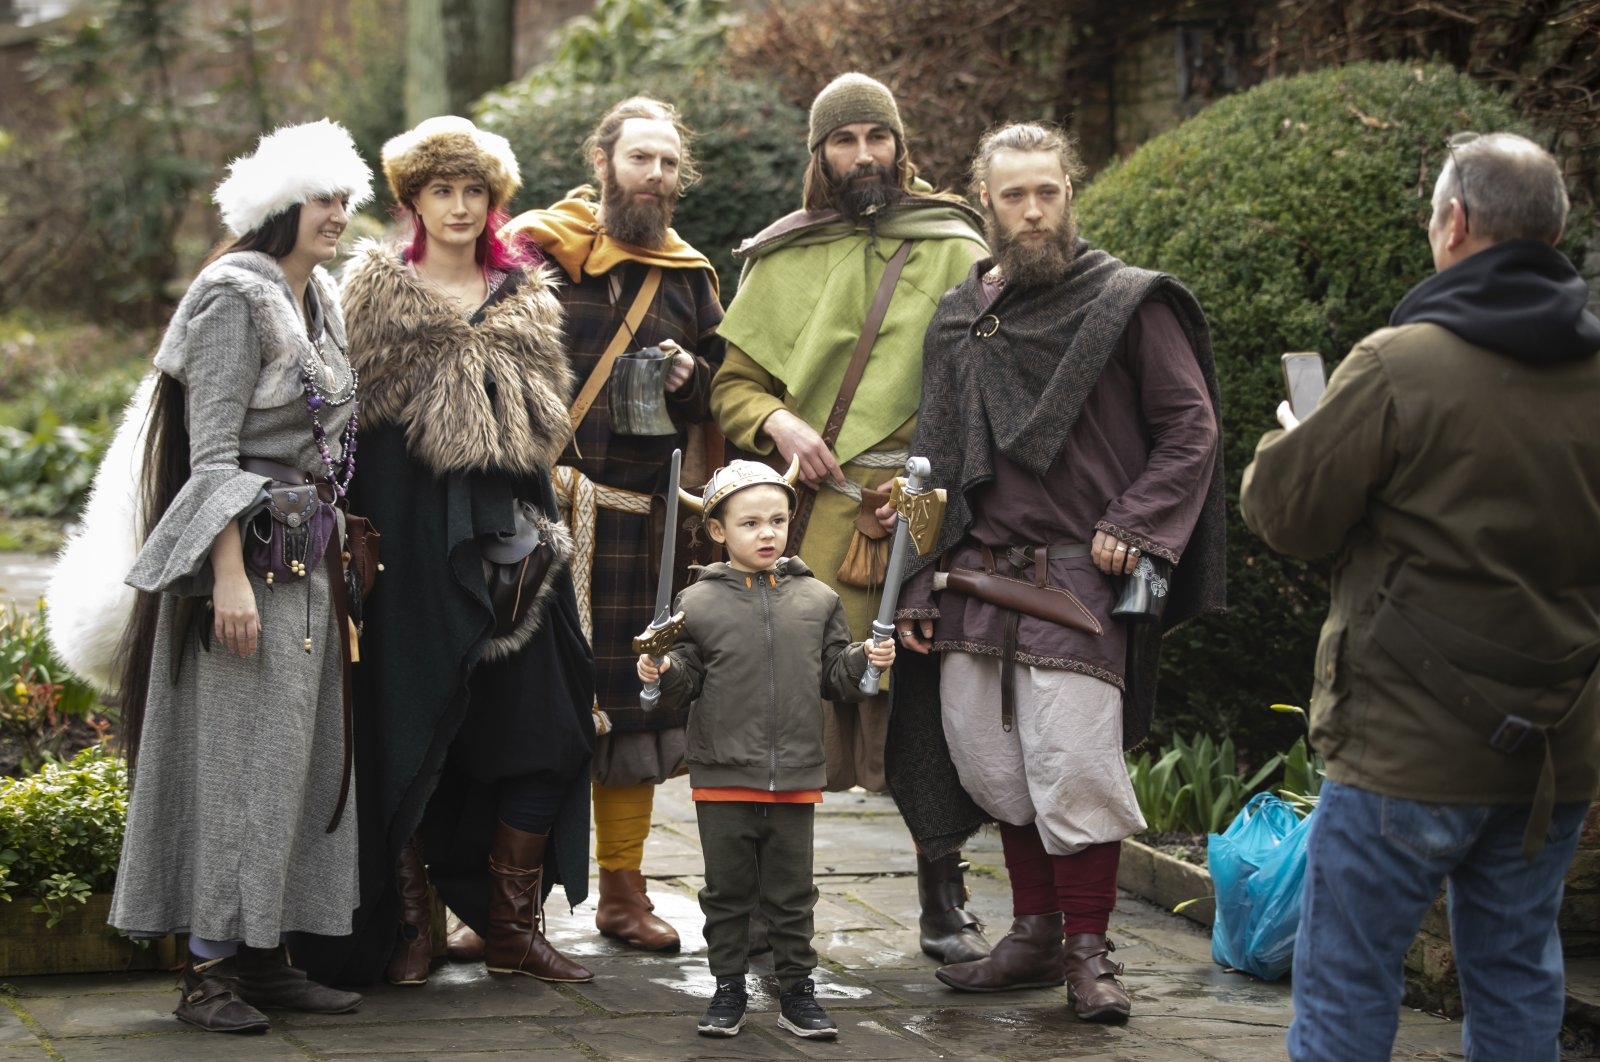 George Nuttall has his photograph taken with Viking re-enactors during the Jorvik Viking Festival in York, recognized as the largest event of its kind in Europe, Feb. 23, 2020. (Reuters Photo)